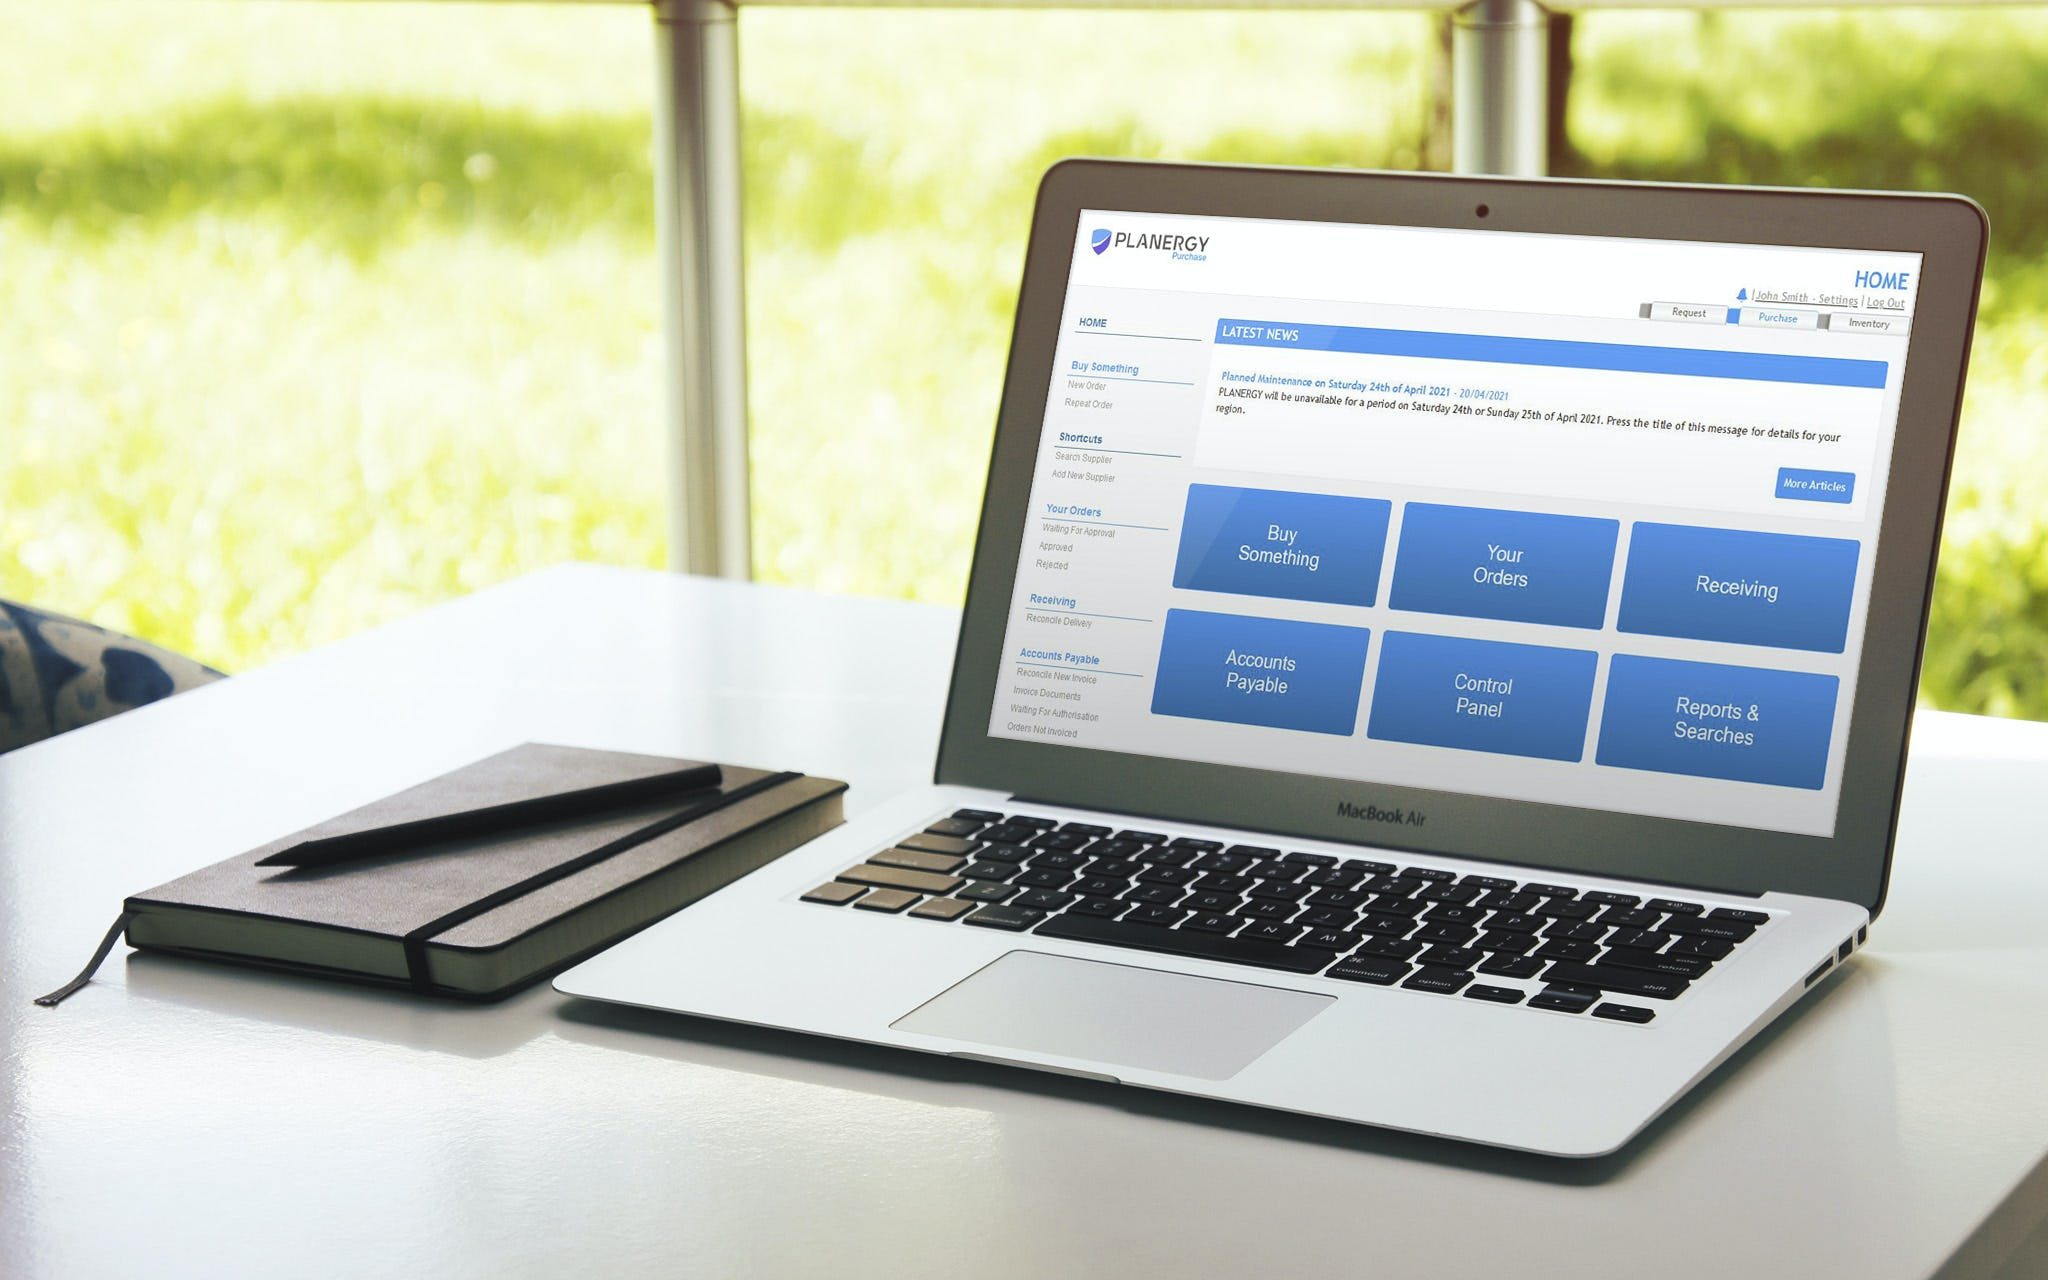 Planergy Software - You can use all of our features from anywhere on any device with an internet connection.